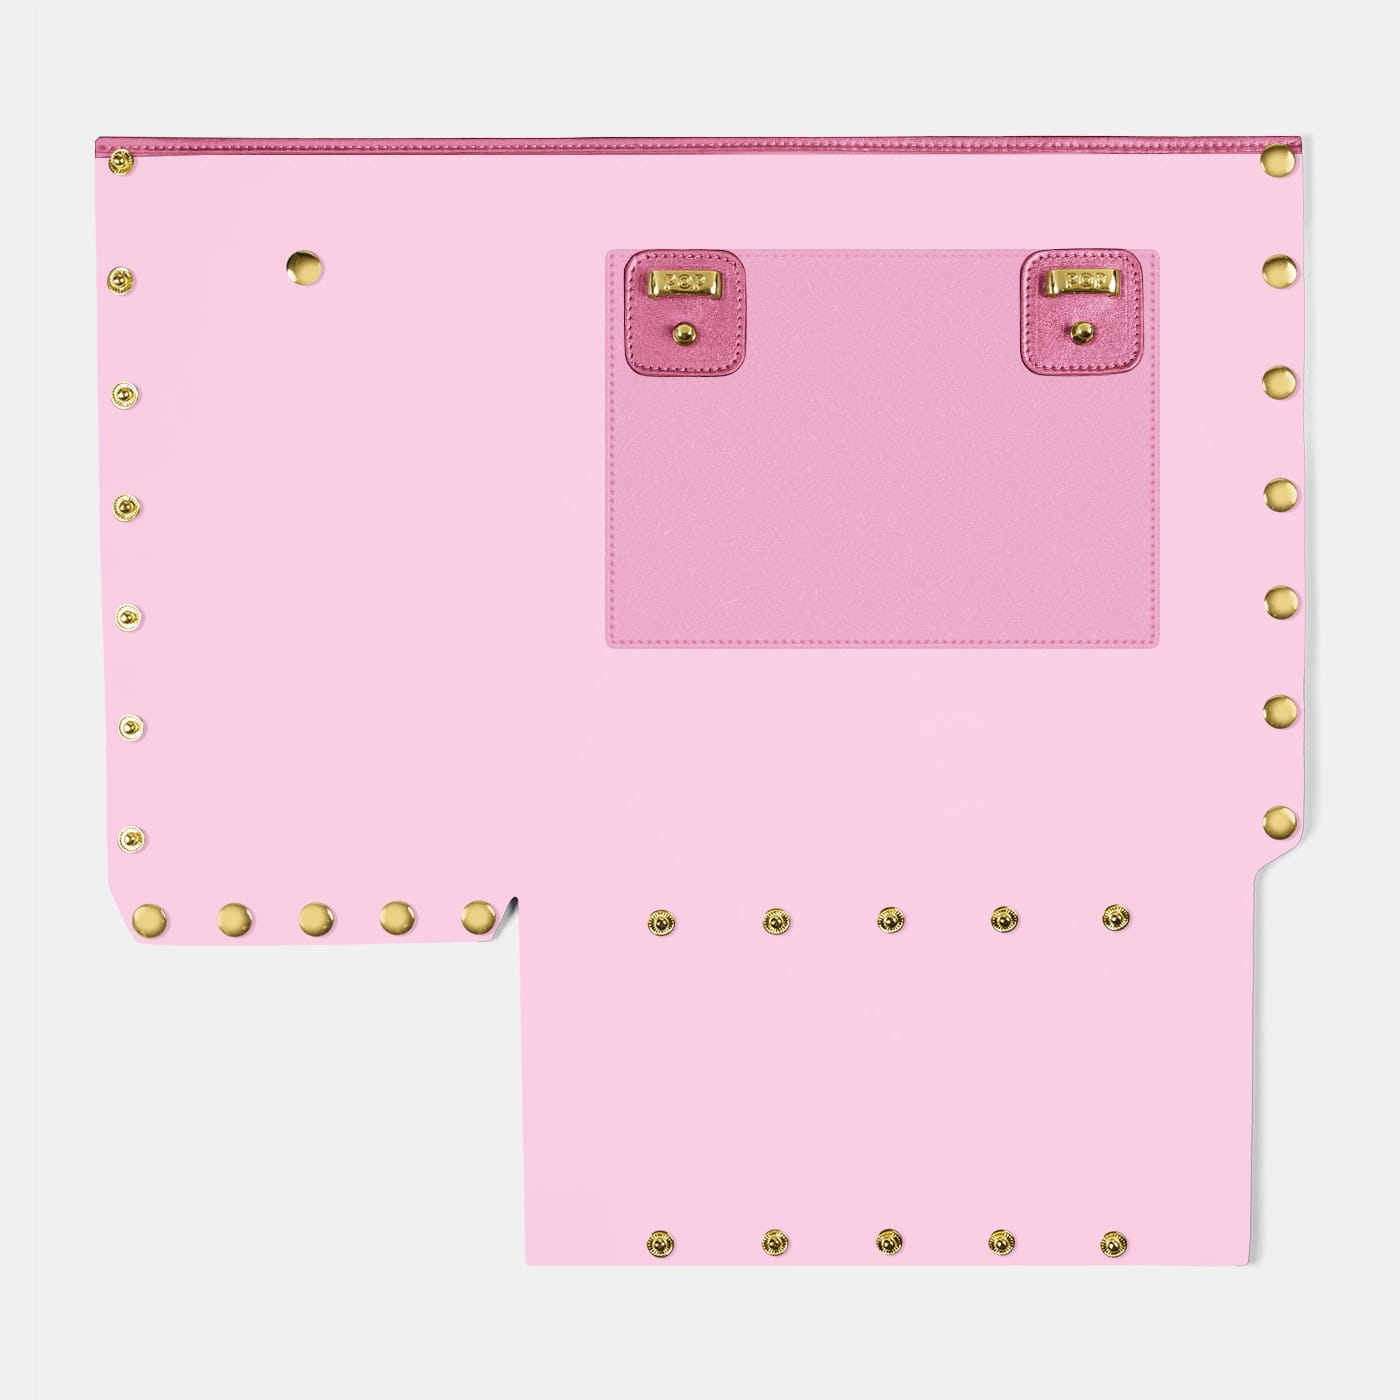 Pop Crystal Back Panel - Pink - Medium